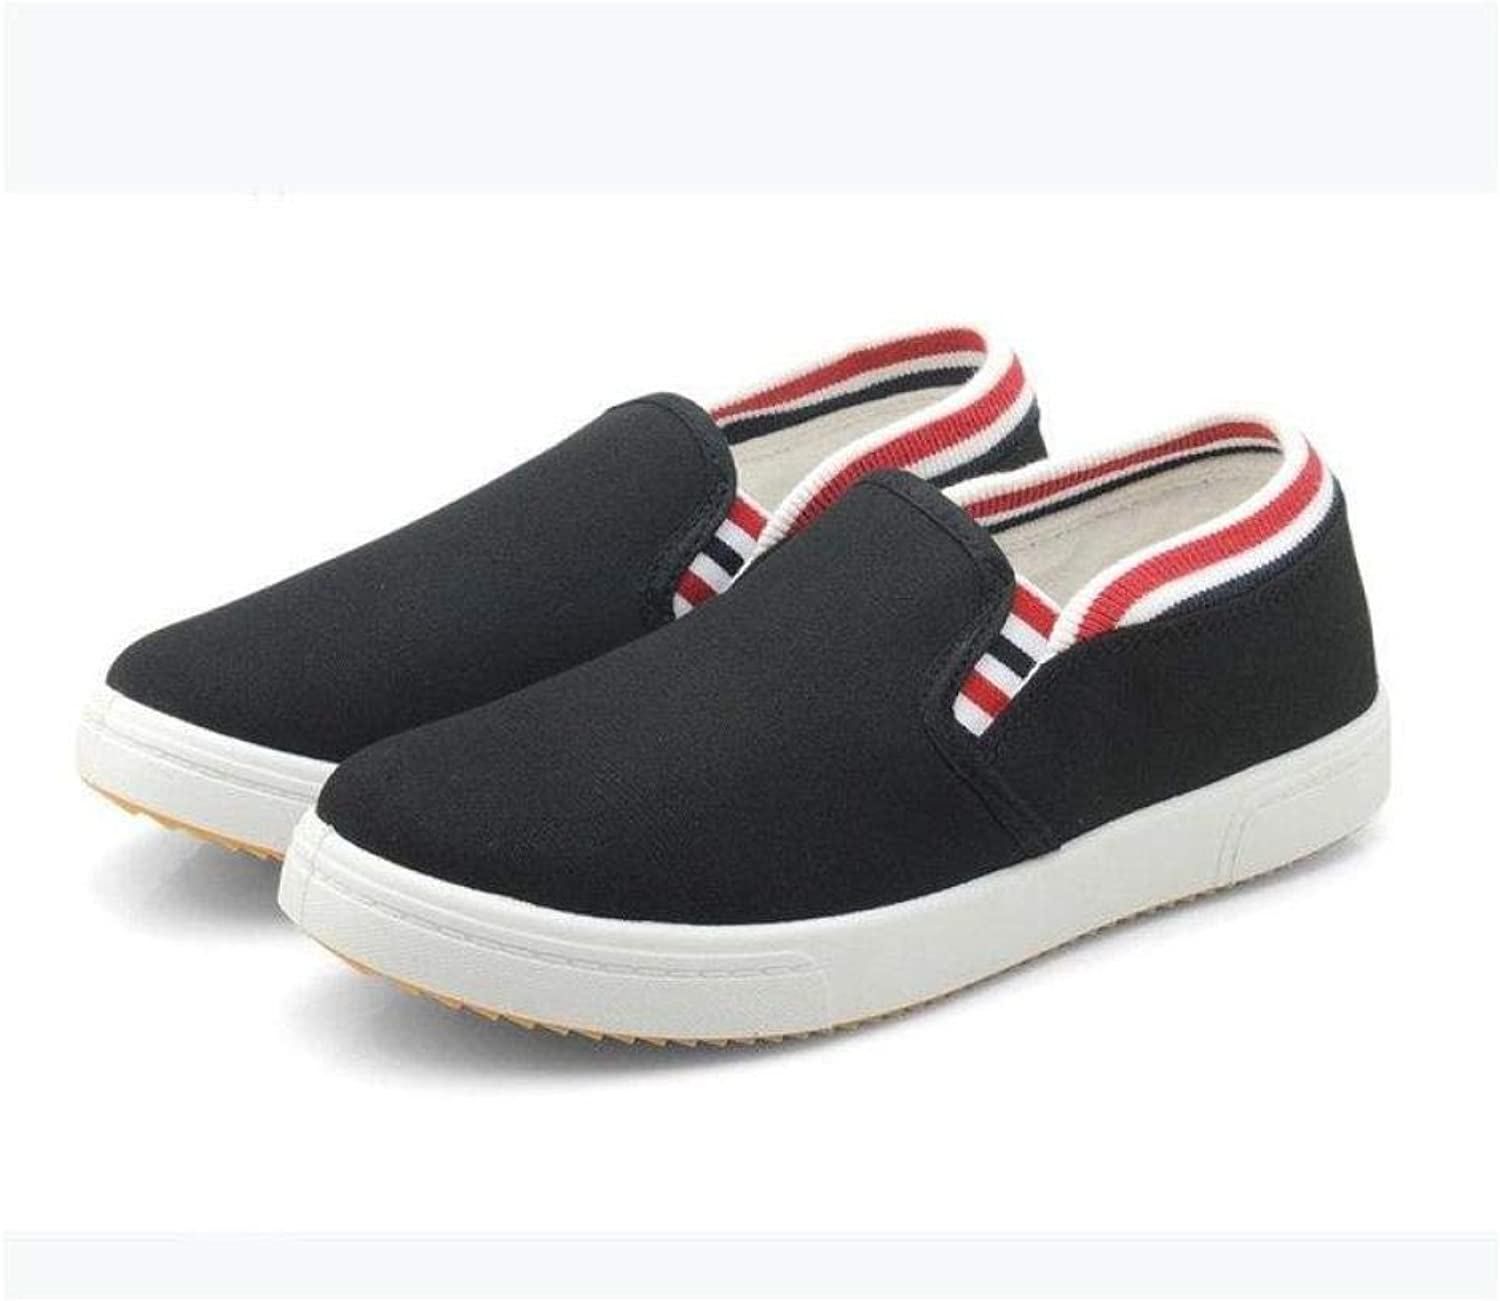 e0e34853bb1d6 Fashion Casual Slip On Loafers Athletic Flats Sneaker Canvas Sports ...